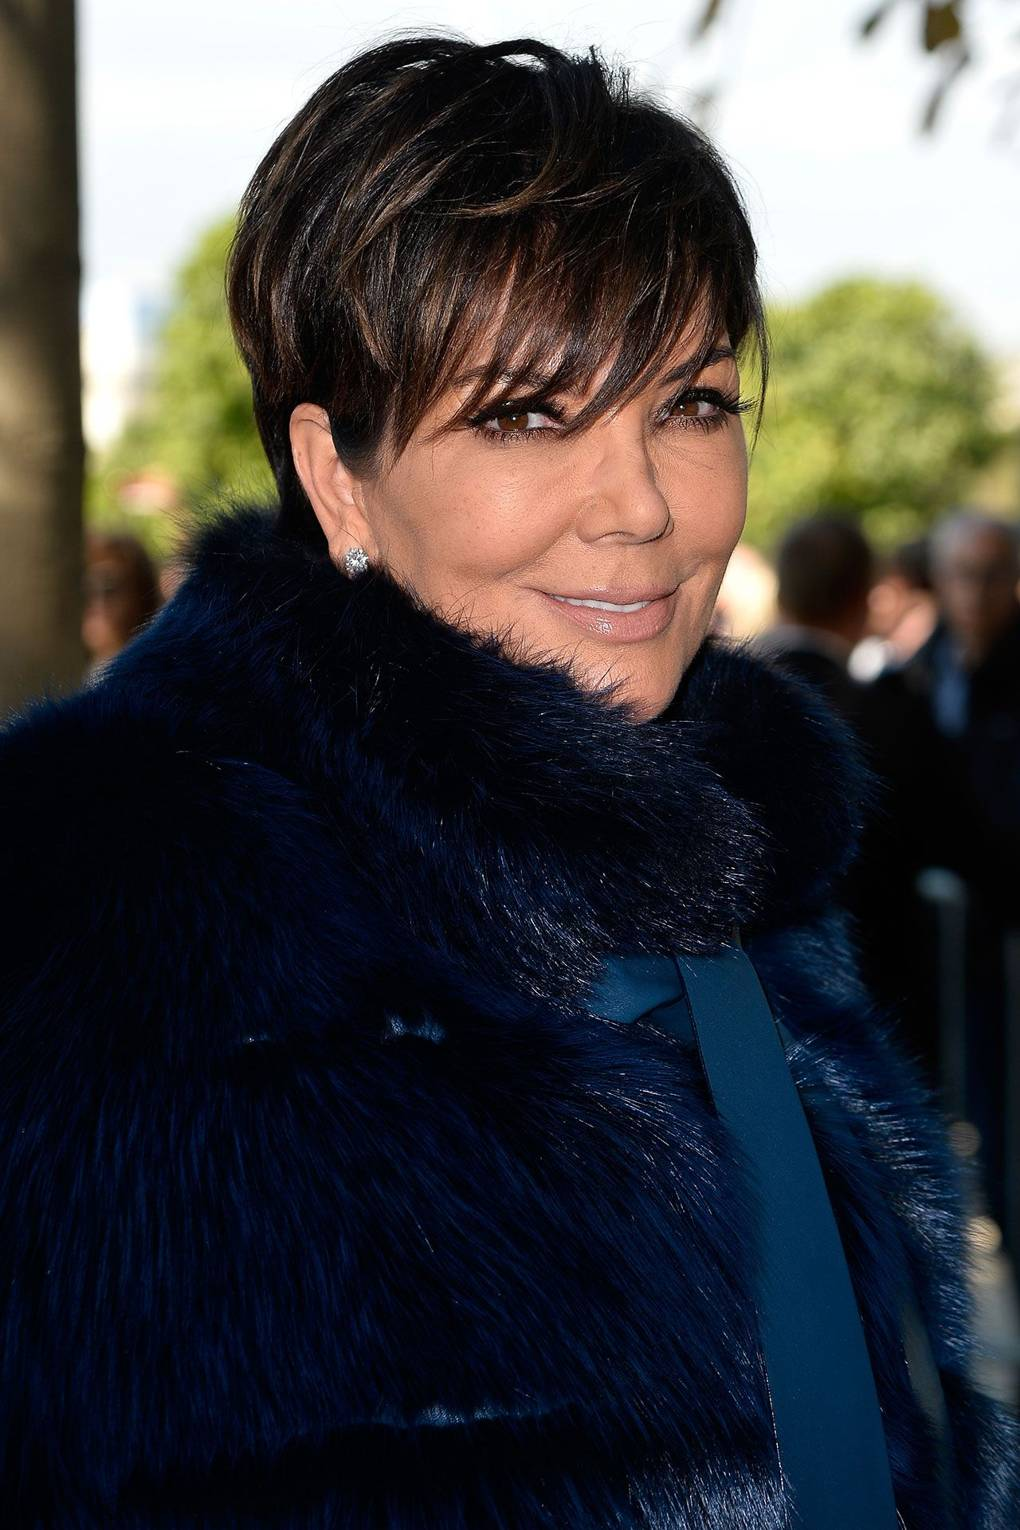 Kris Jenner Shares Throwback Photo Of Kim Kardashian Before Fame